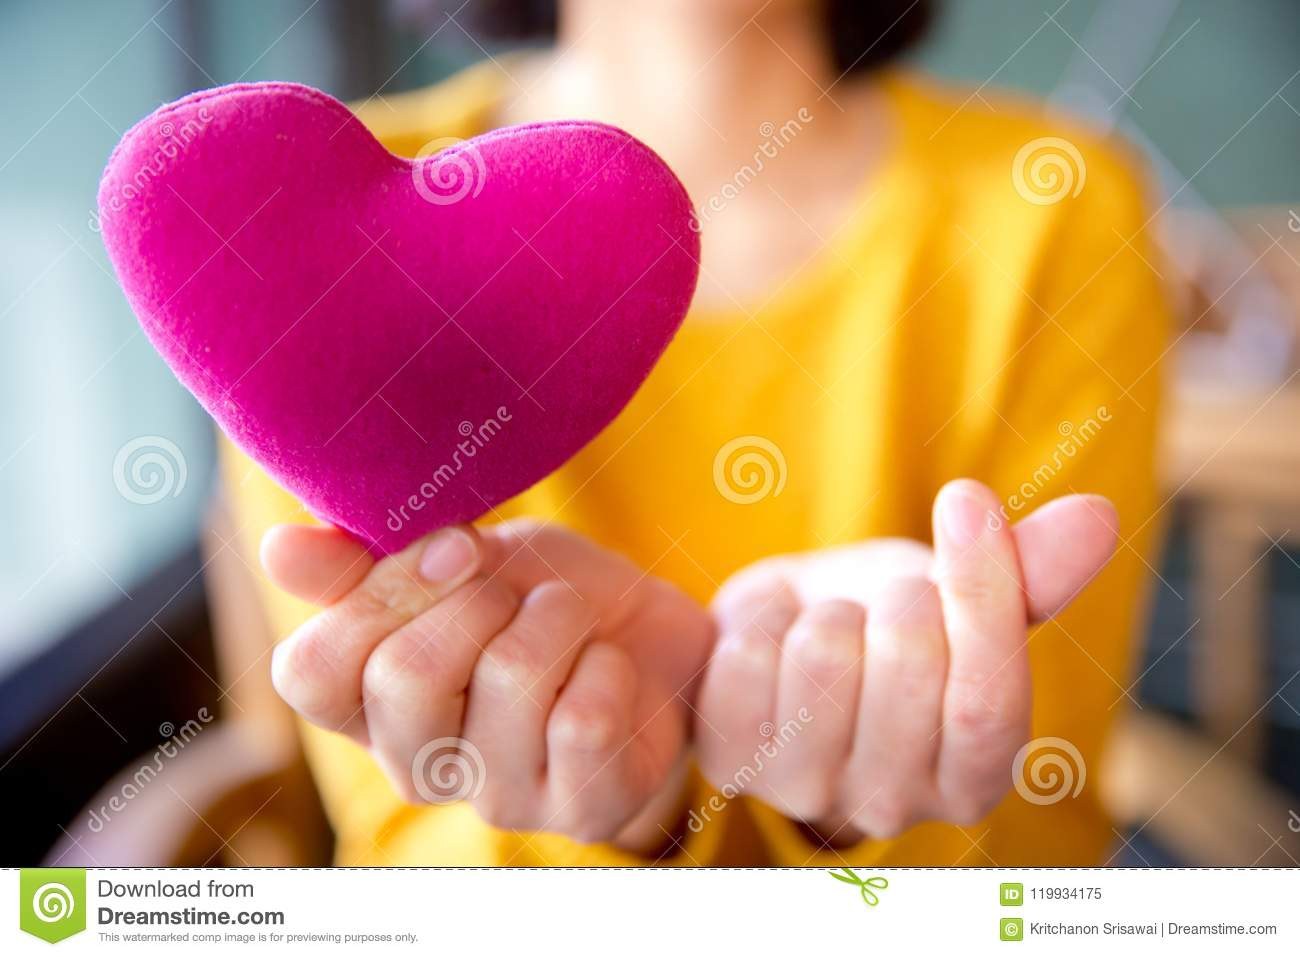 Female hands giving pink heart pillow and make a symbol of heart love with fingers.